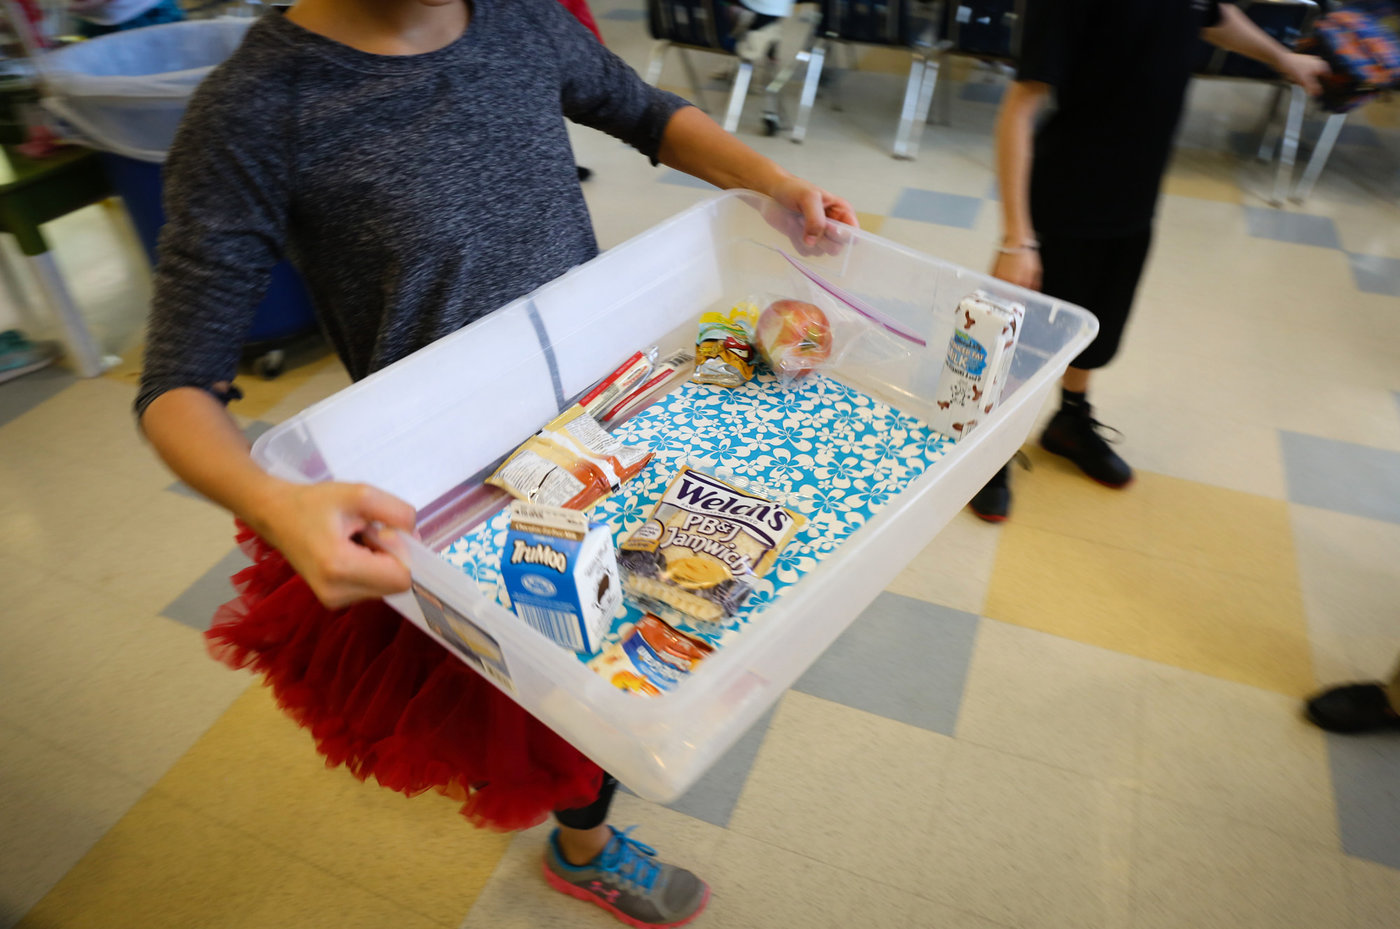 After every lunch period student volunteers carry food collected for the Food Bus program over to a designated refrigerator. Victoria Milko/NPR